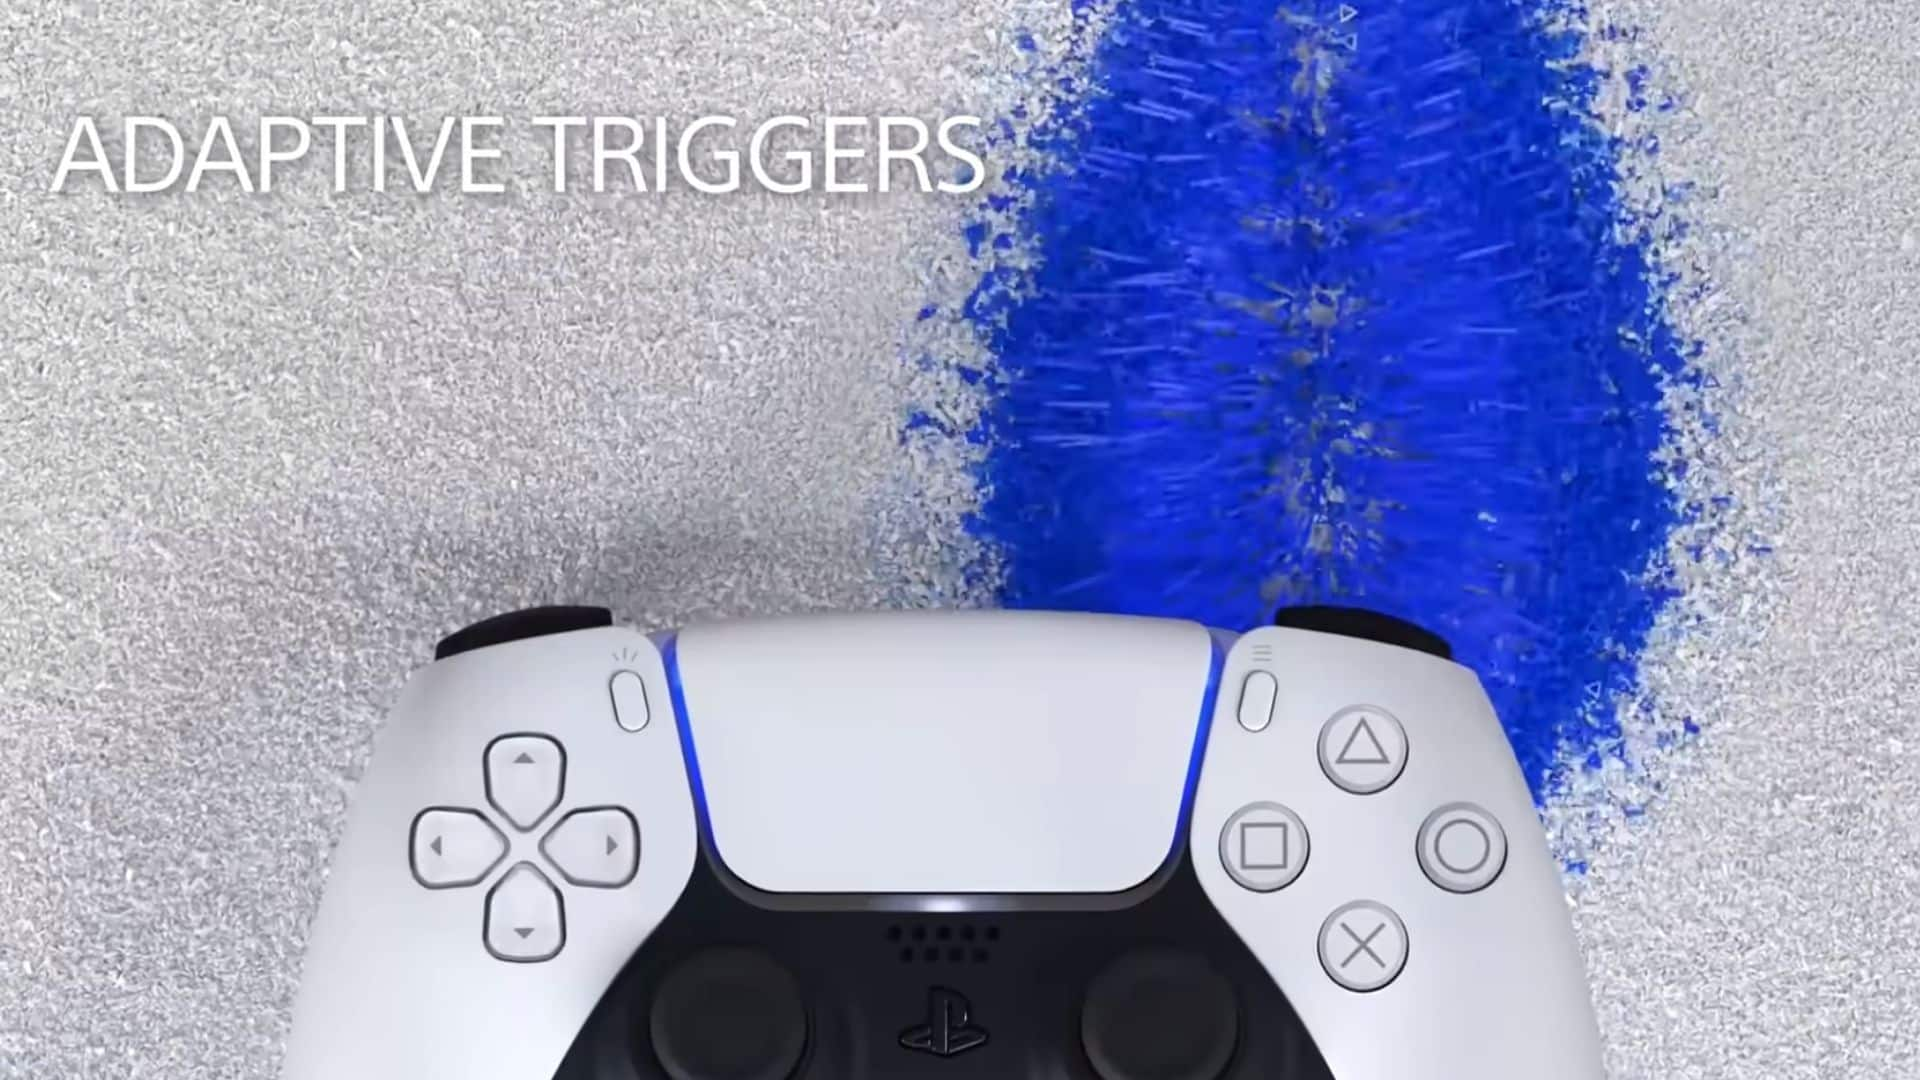 ps5 controller adaptive triggers